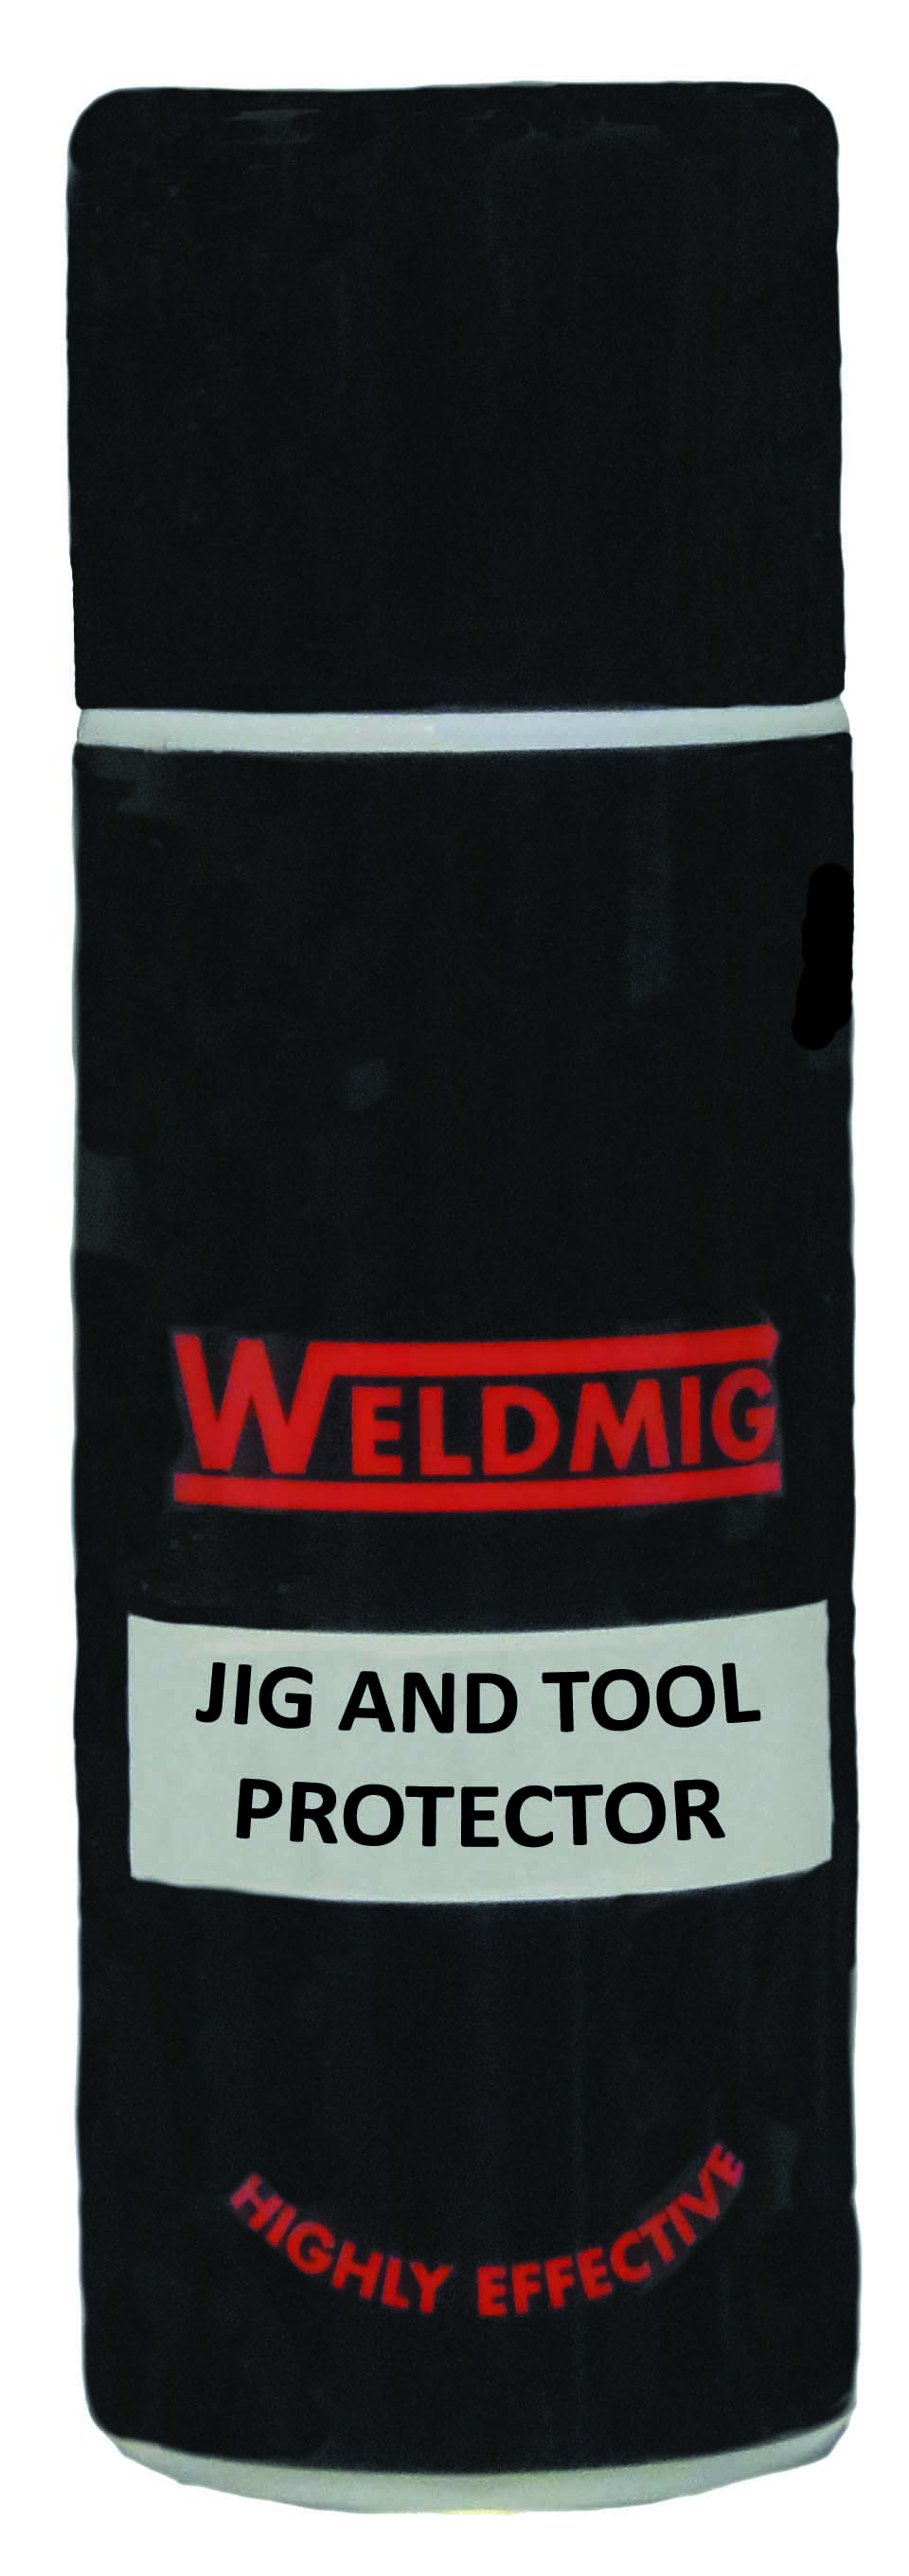 Jig and Tool Protector 400ml